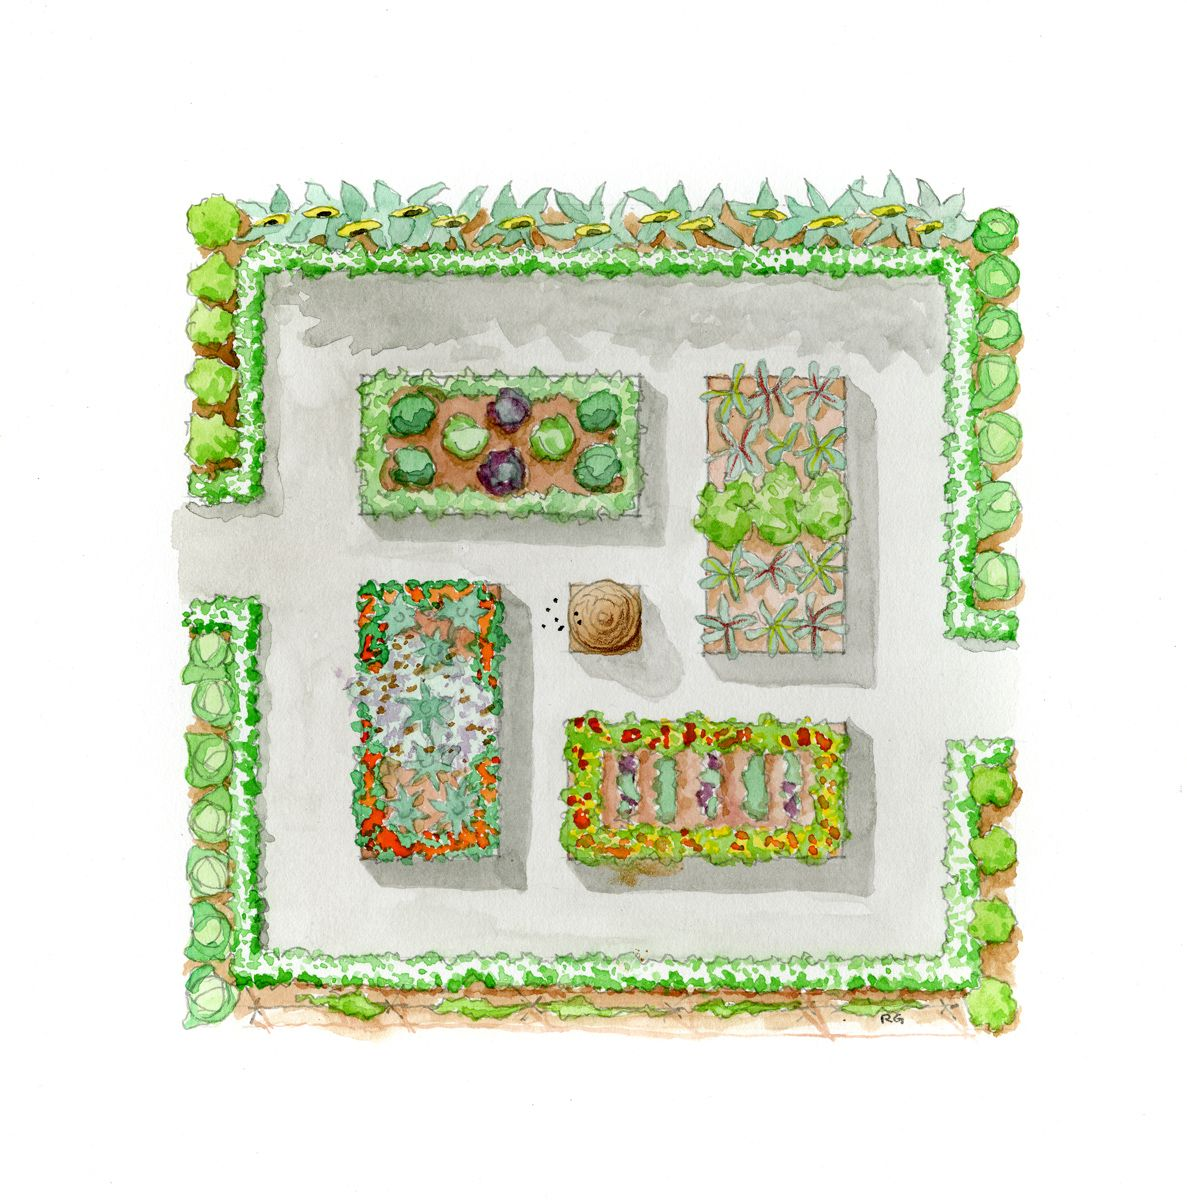 raised bed garden plans | The Paintbox Garden from The Complete ...